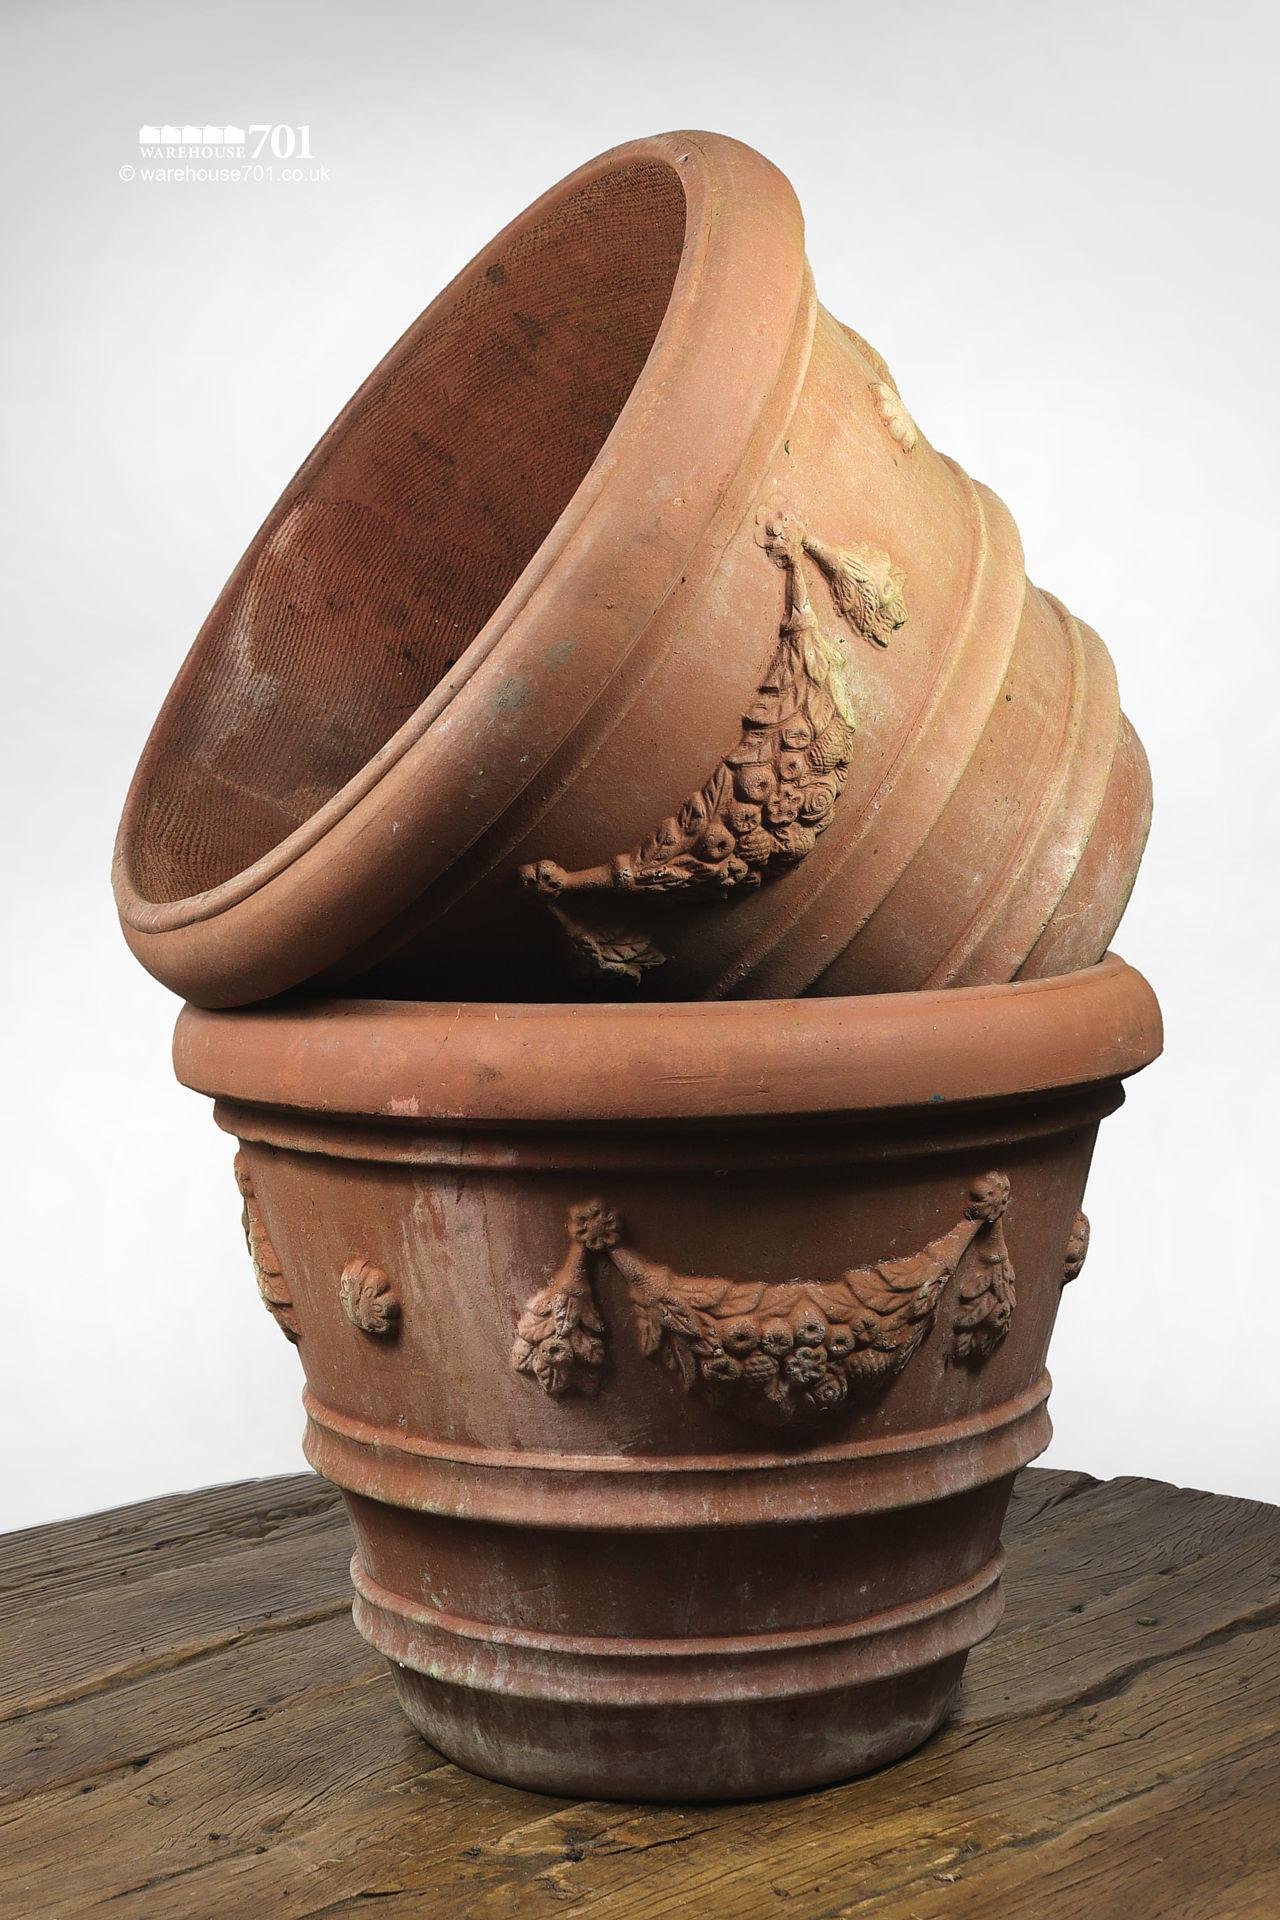 Reclaimed Terracotta Planter with Swag Decor and Double Ribbing